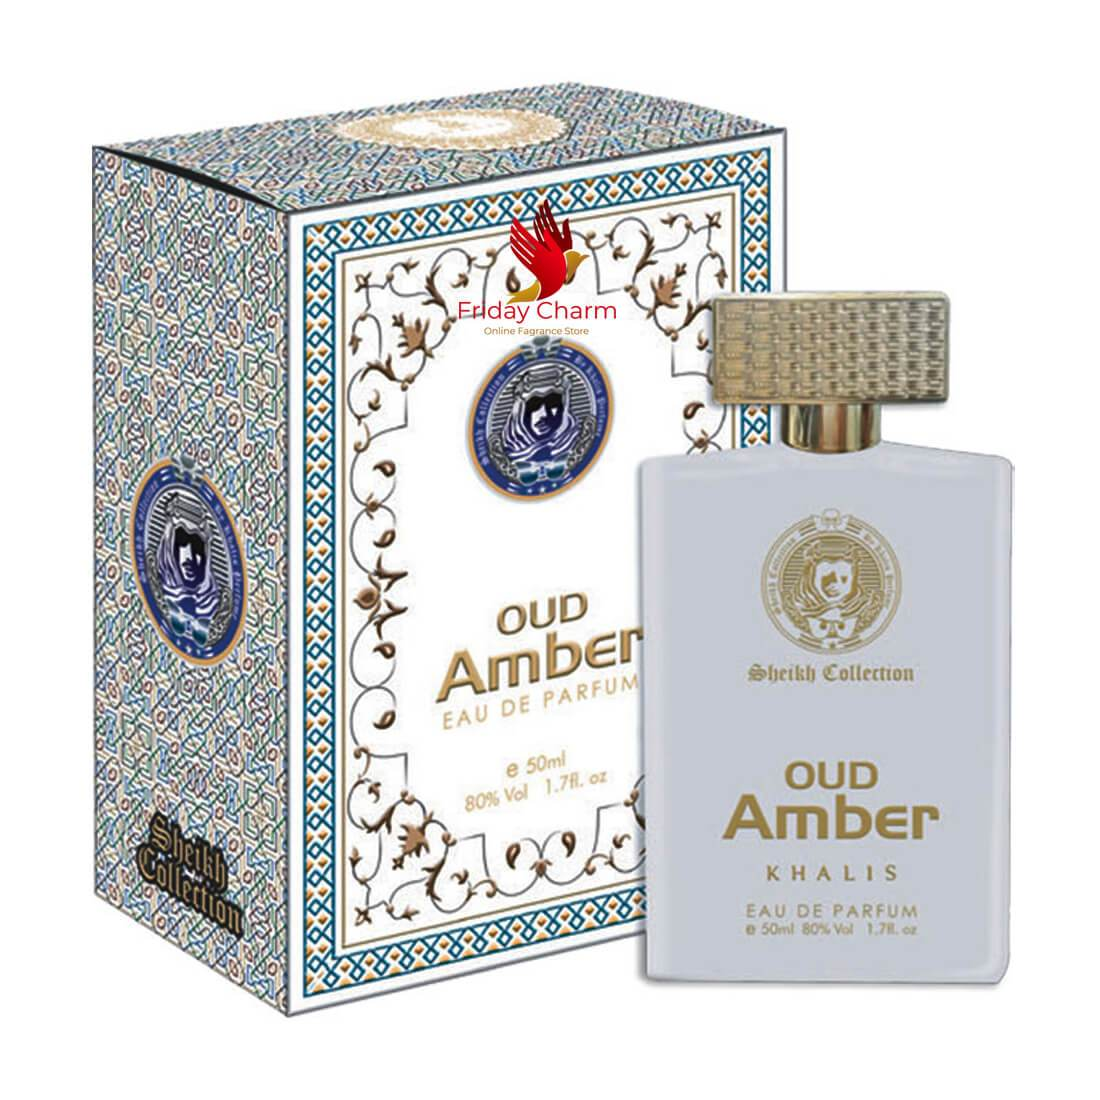 Khalis Oudh Amber Fragrance Spray - 50ml